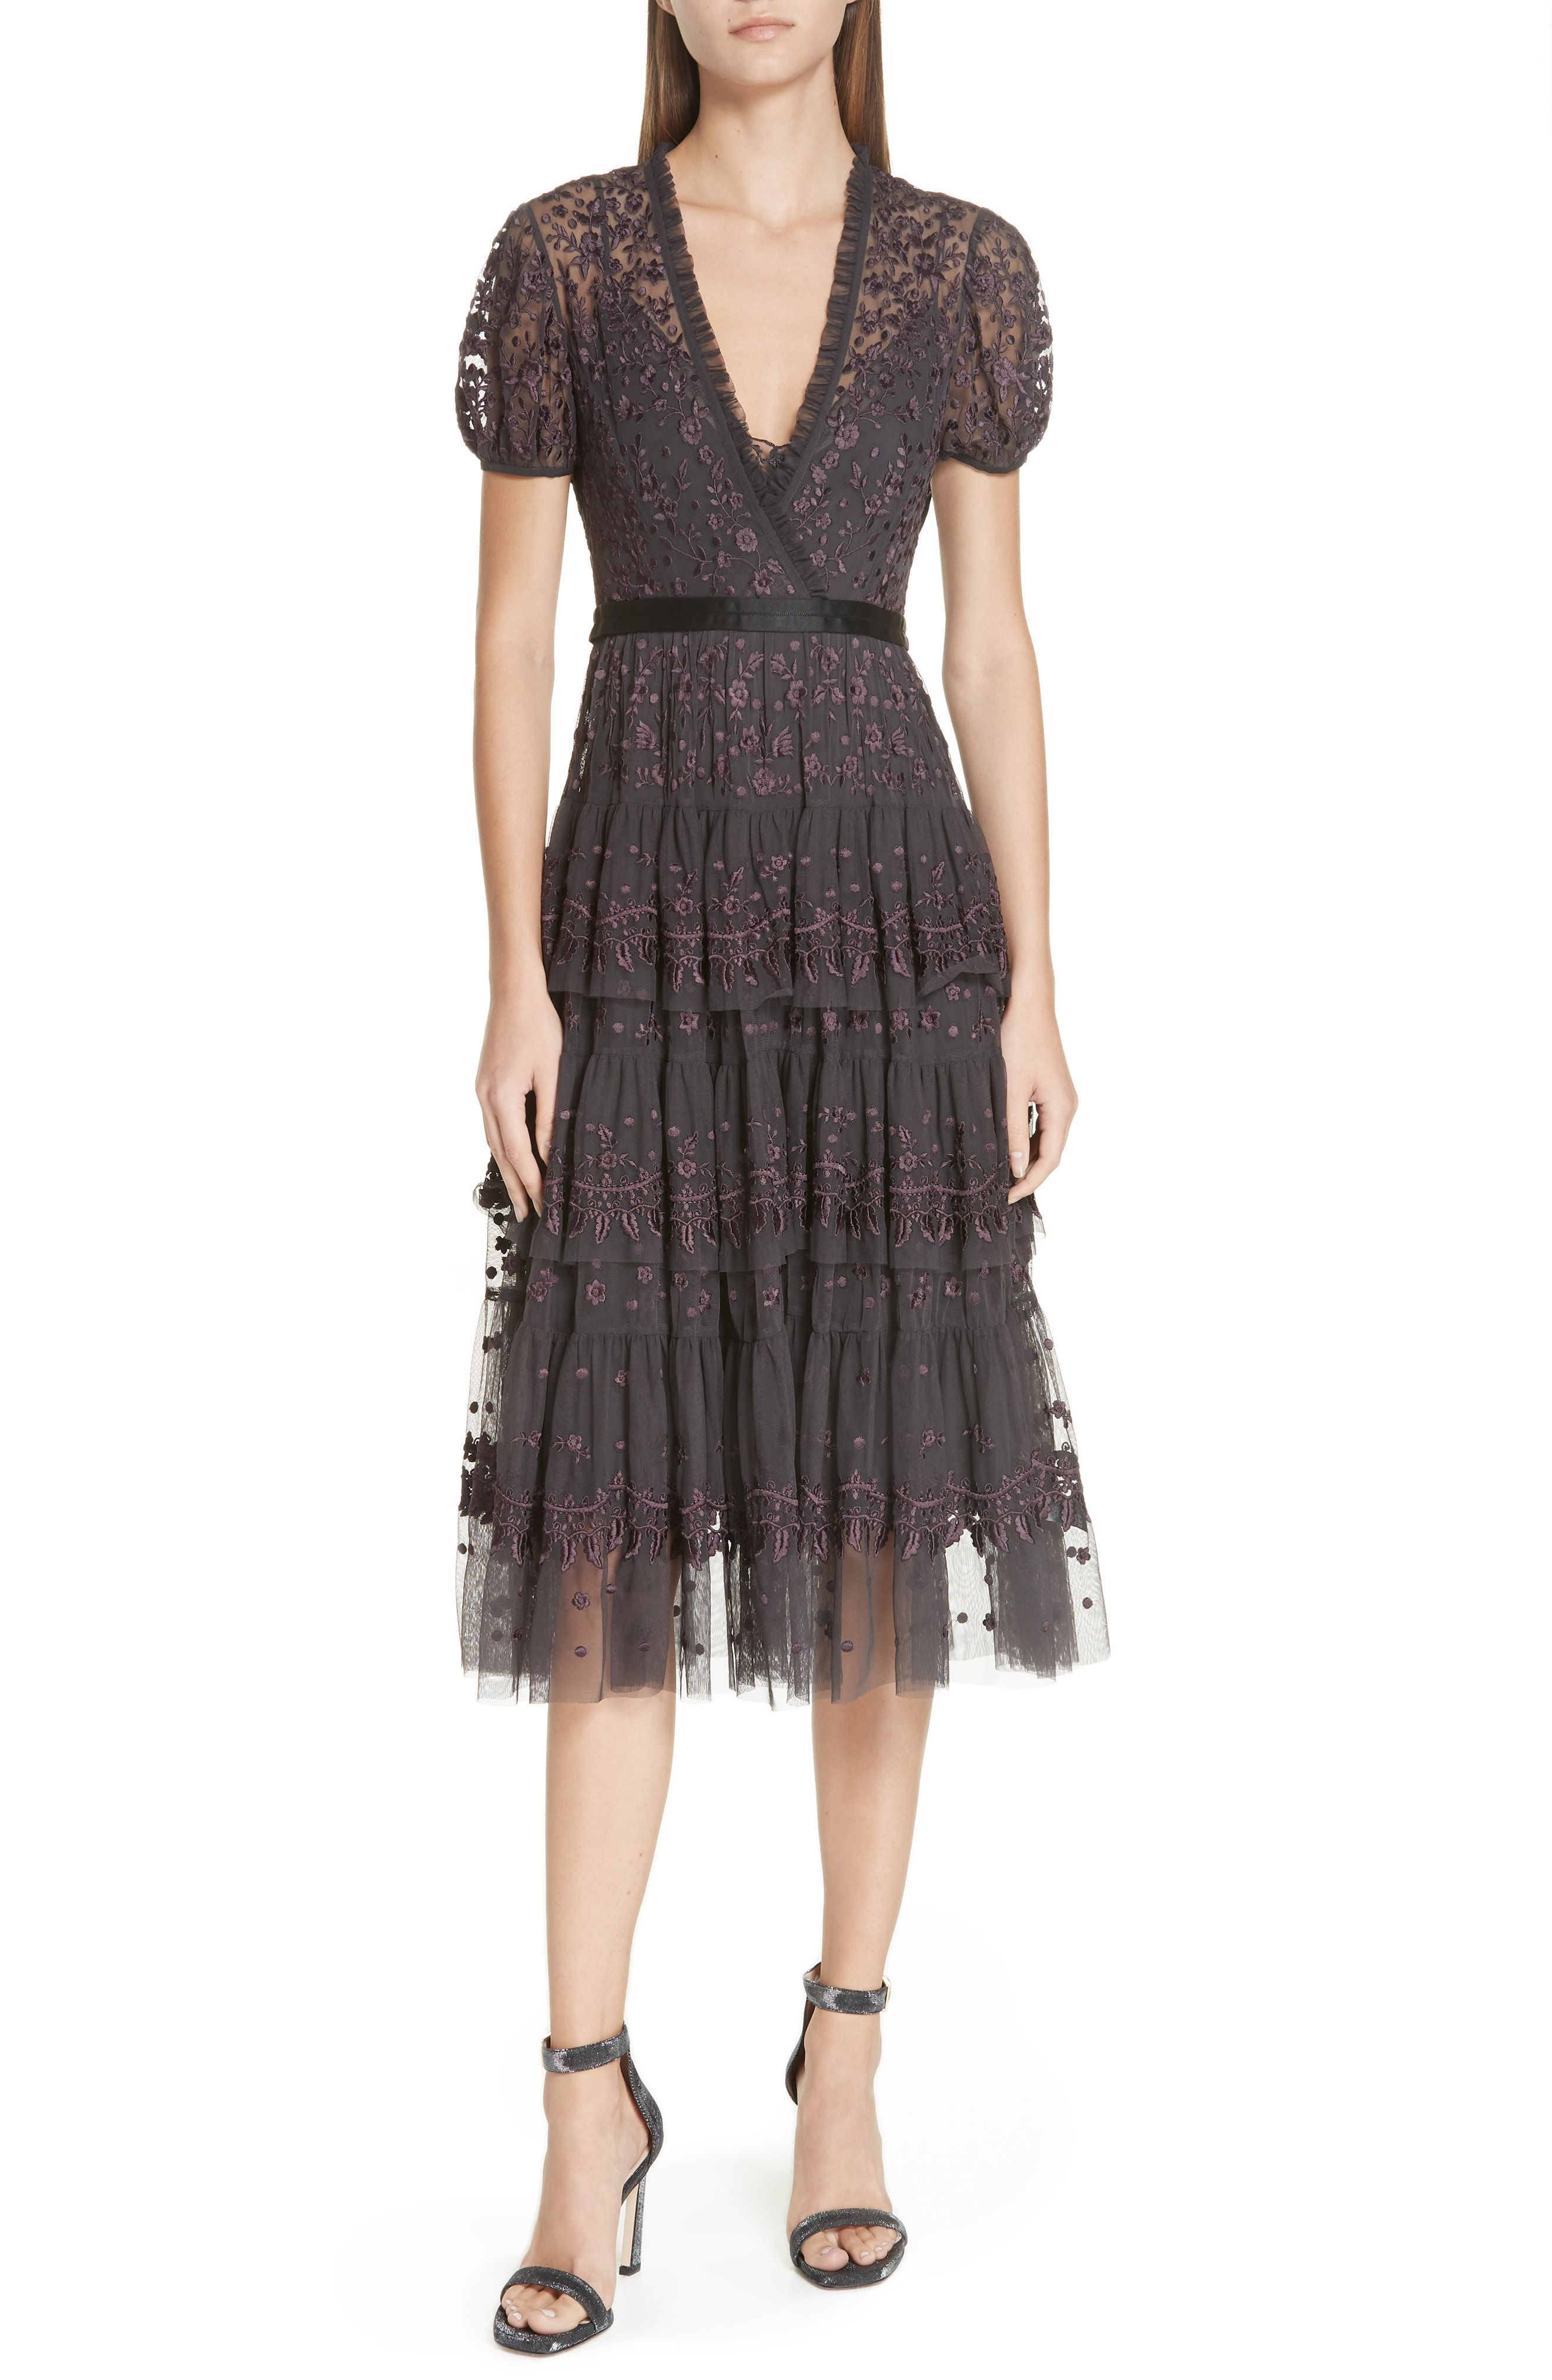 29 Wedding Guest Outfit Options Meant To Stand Out Not Upstage Trendy Cocktail Dresses Dresses Lace Dress [ 4048 x 2640 Pixel ]